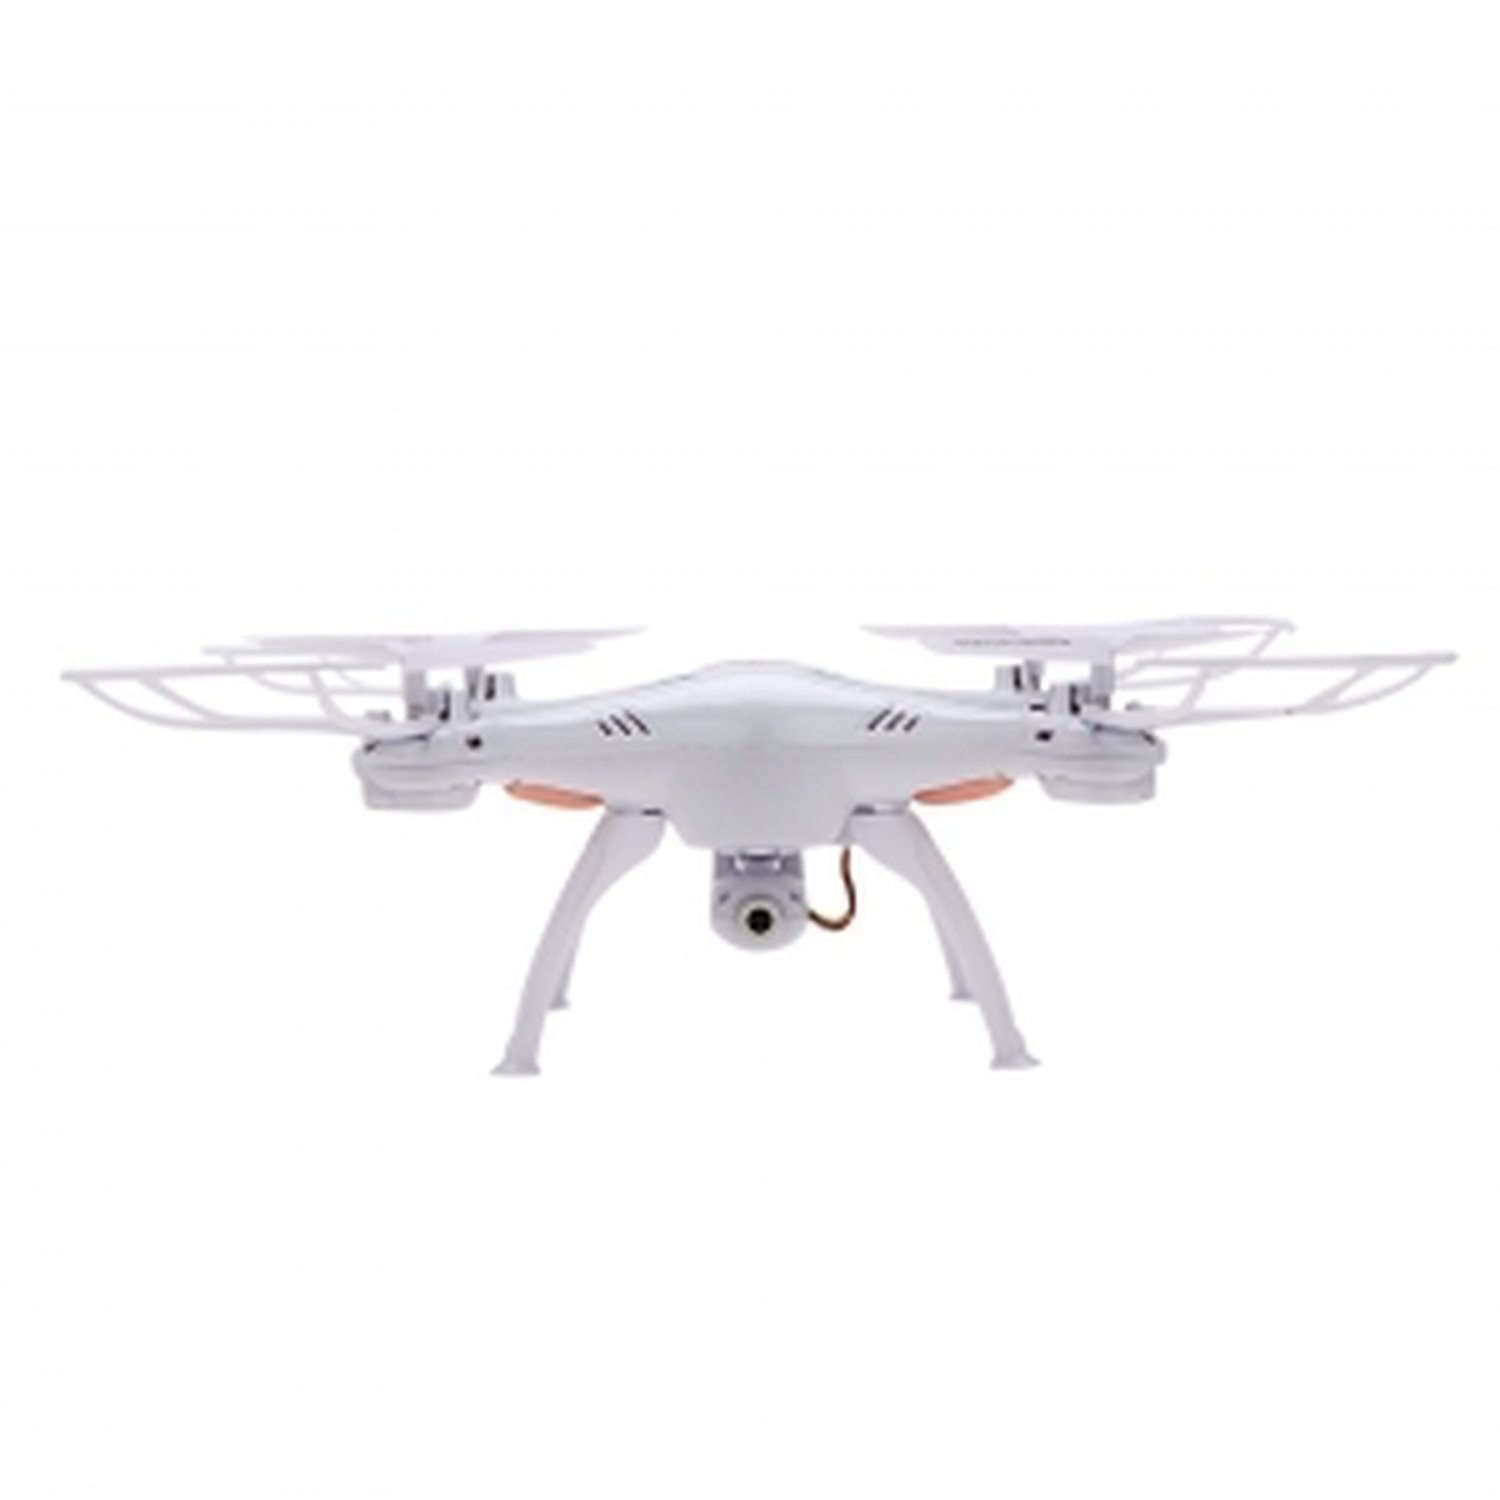 купить QUADCOPTER DRONE SYMA X5SW FPV Explorers 2.4GHz 4ch 6 axis Gyro RC CAMERA HD WIFI по цене 65.34 рублей